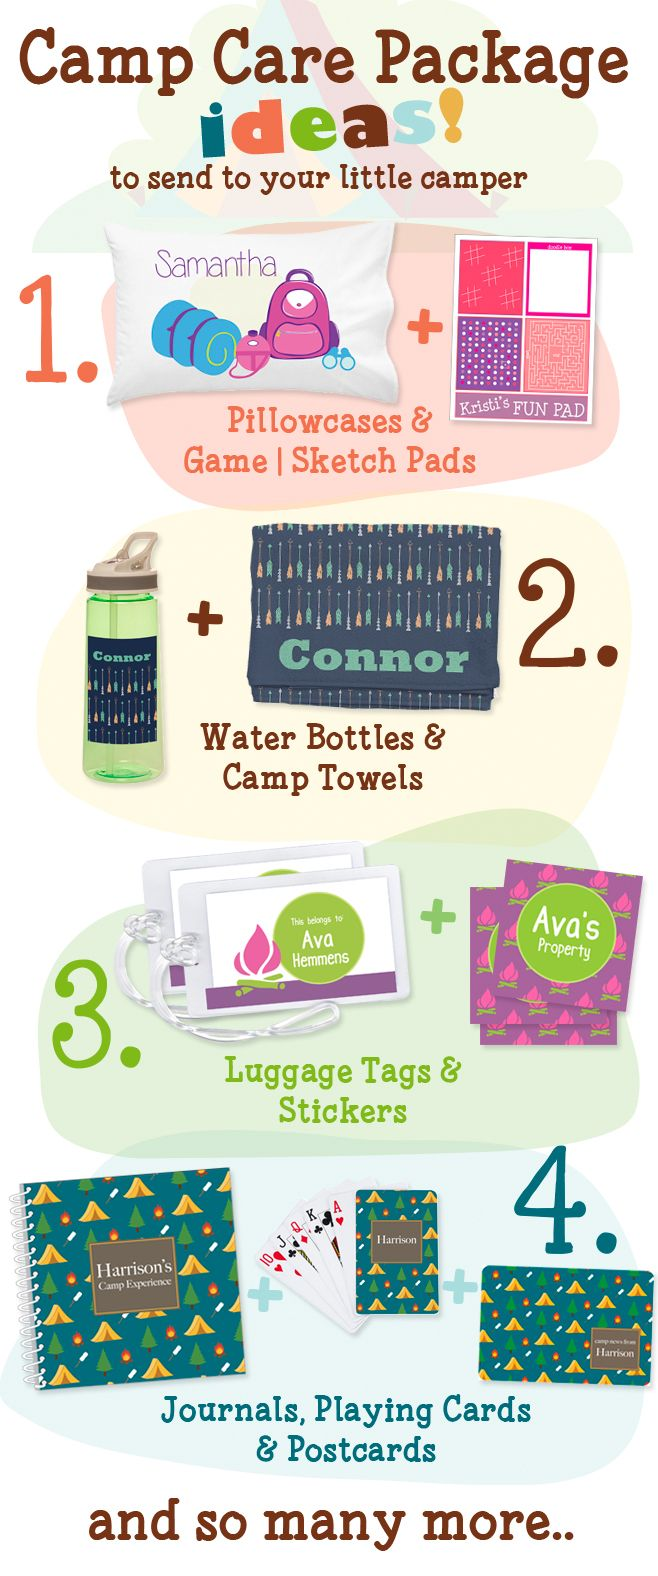 Have a child in camp or going soon? Here are just a few camp care package ideas your child will love. Choose from hundreds of unique gifts, we'll custom personalize them, and can even ship them direct